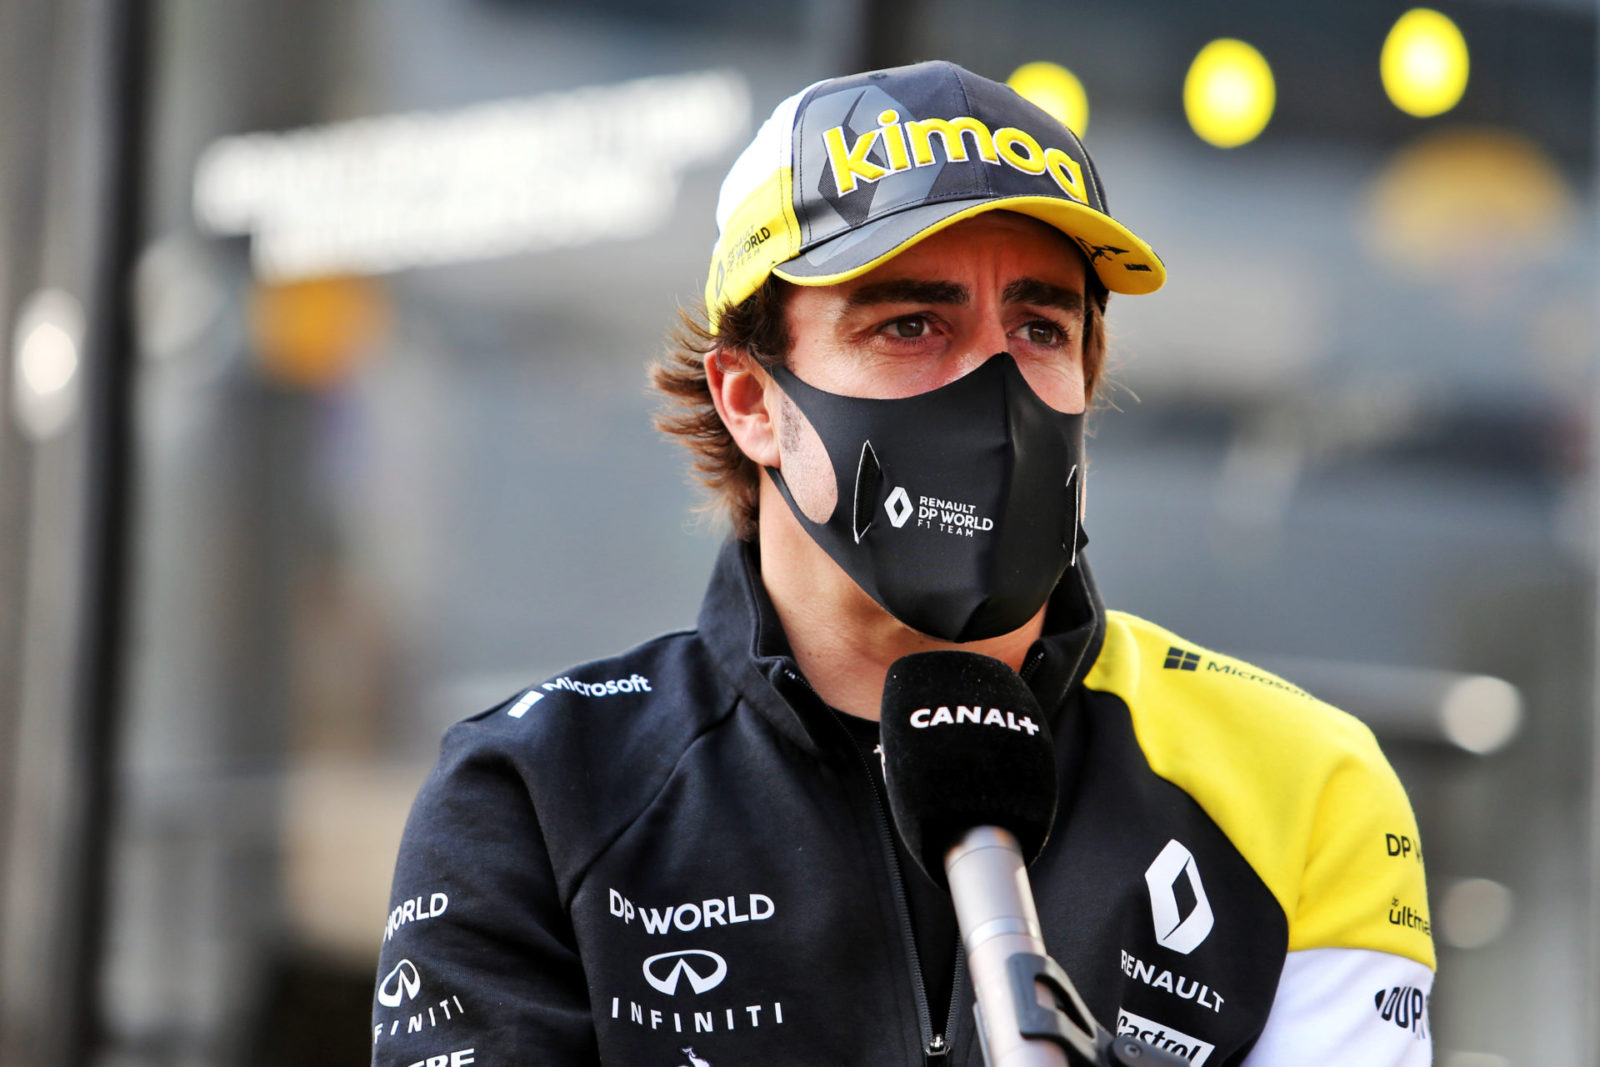 """""""To make some podiums and taste the champagne again would be fantastic"""" - Fernando Alonso hoping for Mercedes slip ups next season to take podium with Alpine"""